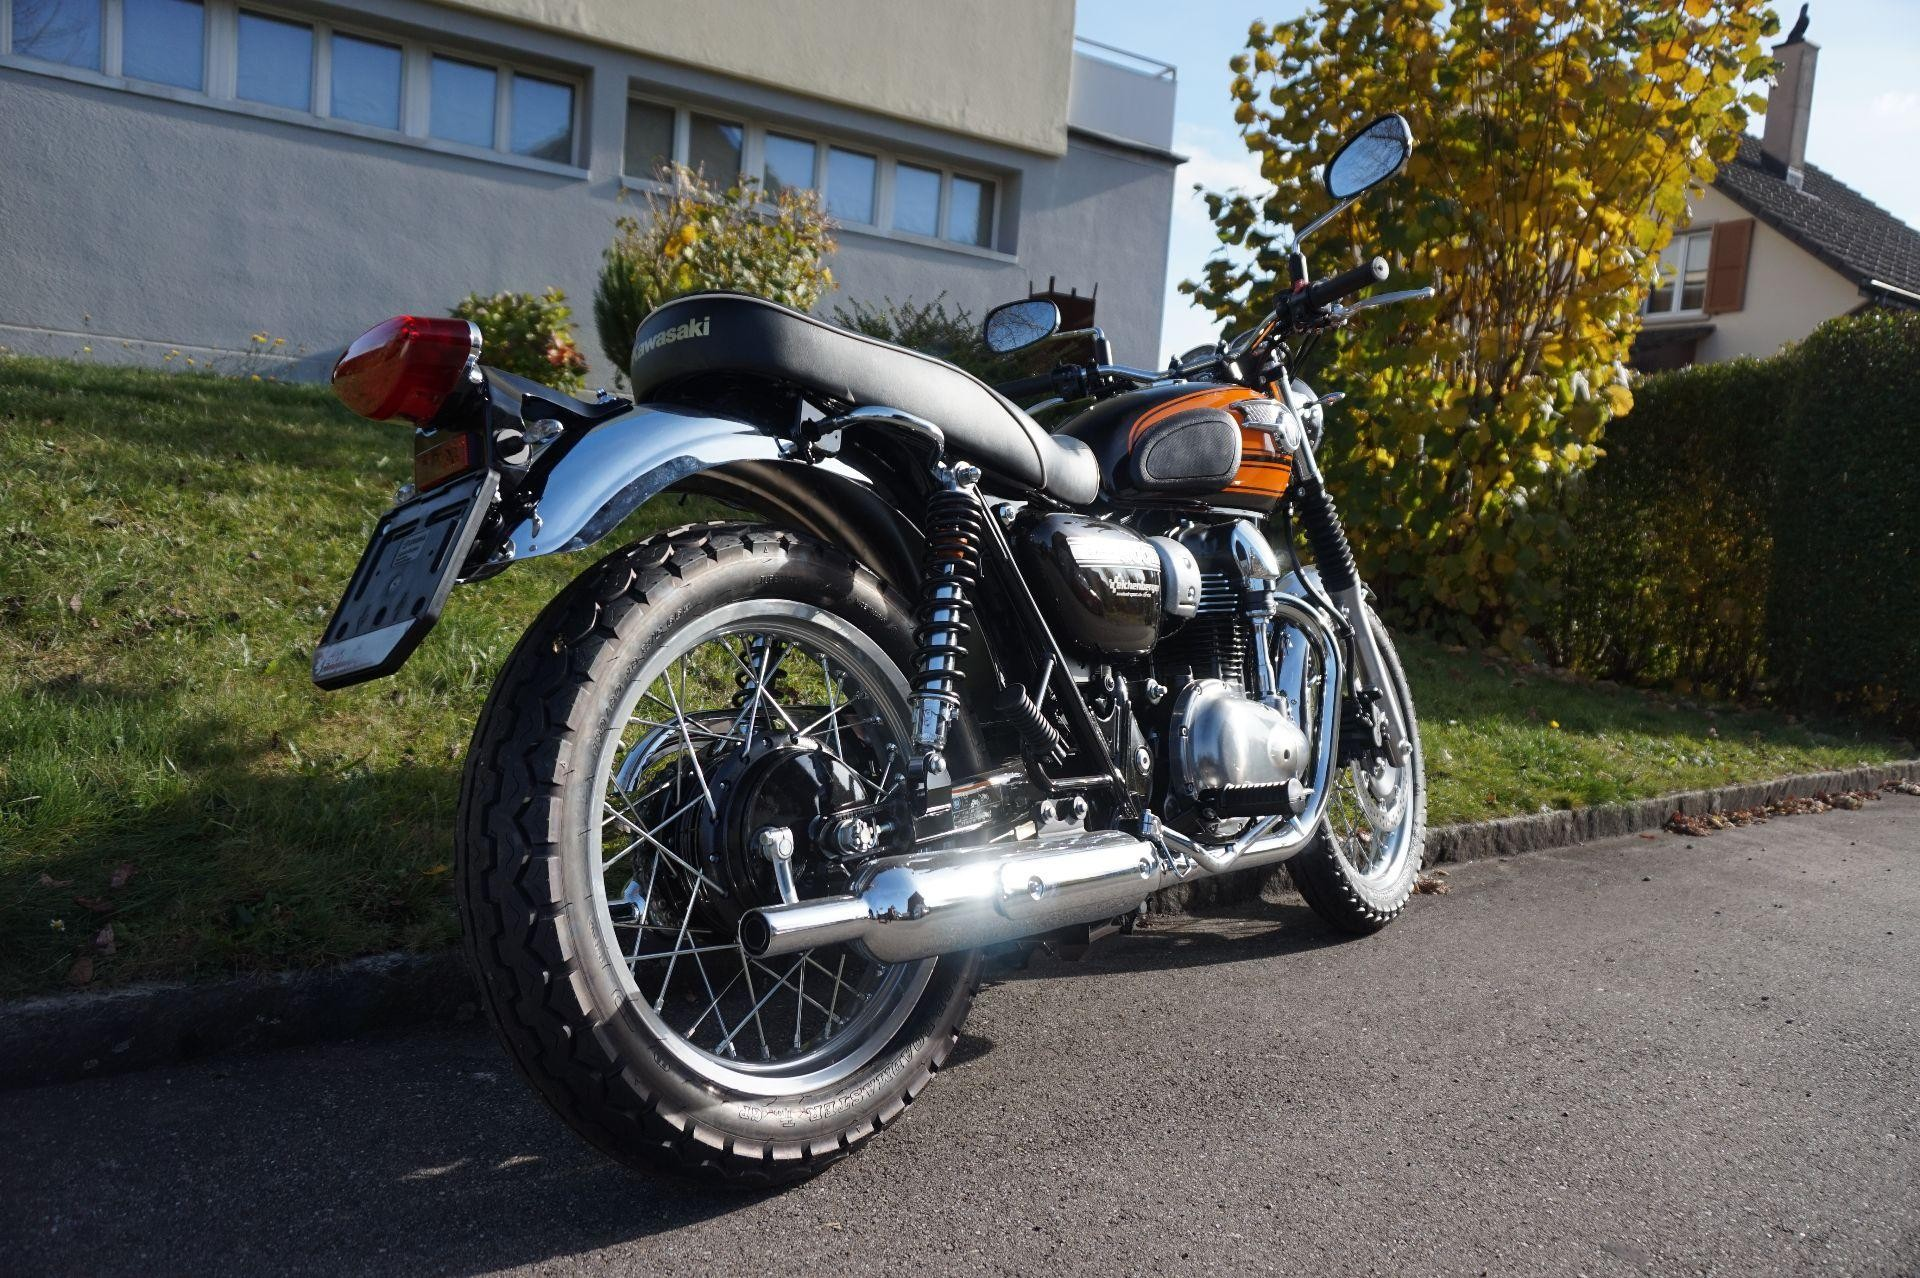 KAWASAKI W 800 Final Edition 35kW Micro Blinker Pre Owned